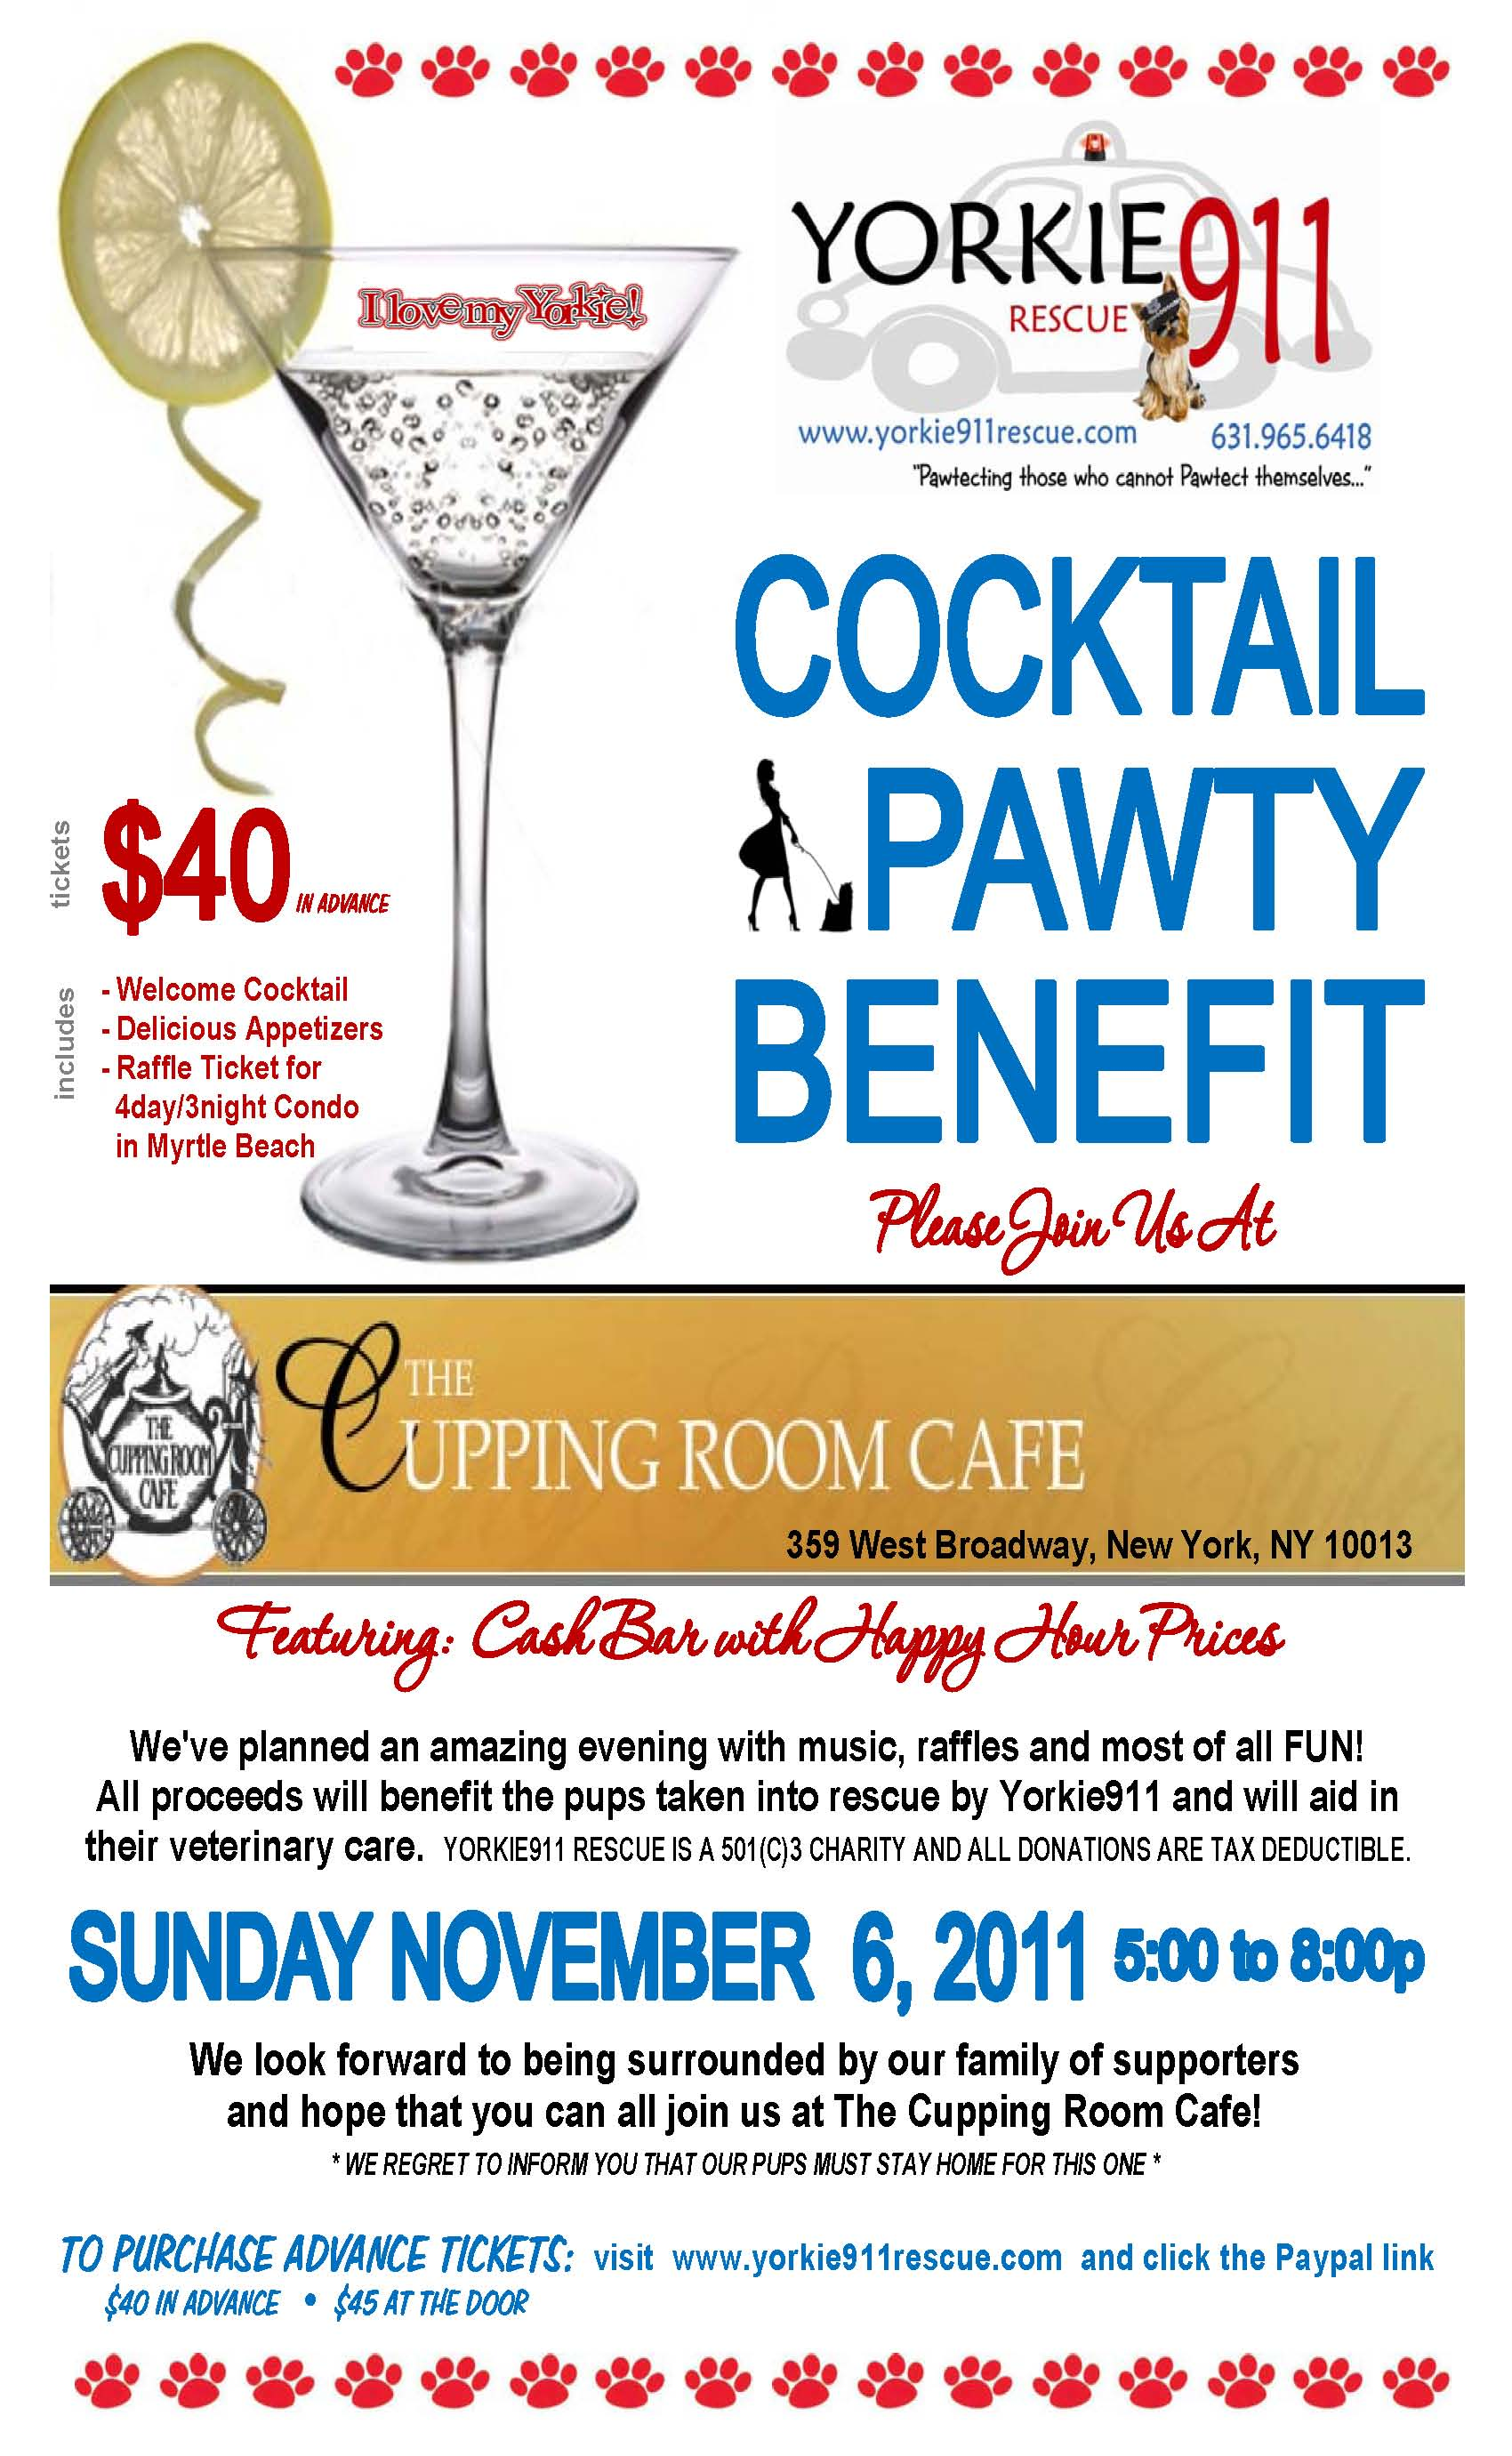 11.11.06 Cupping Room Cafe Flyer